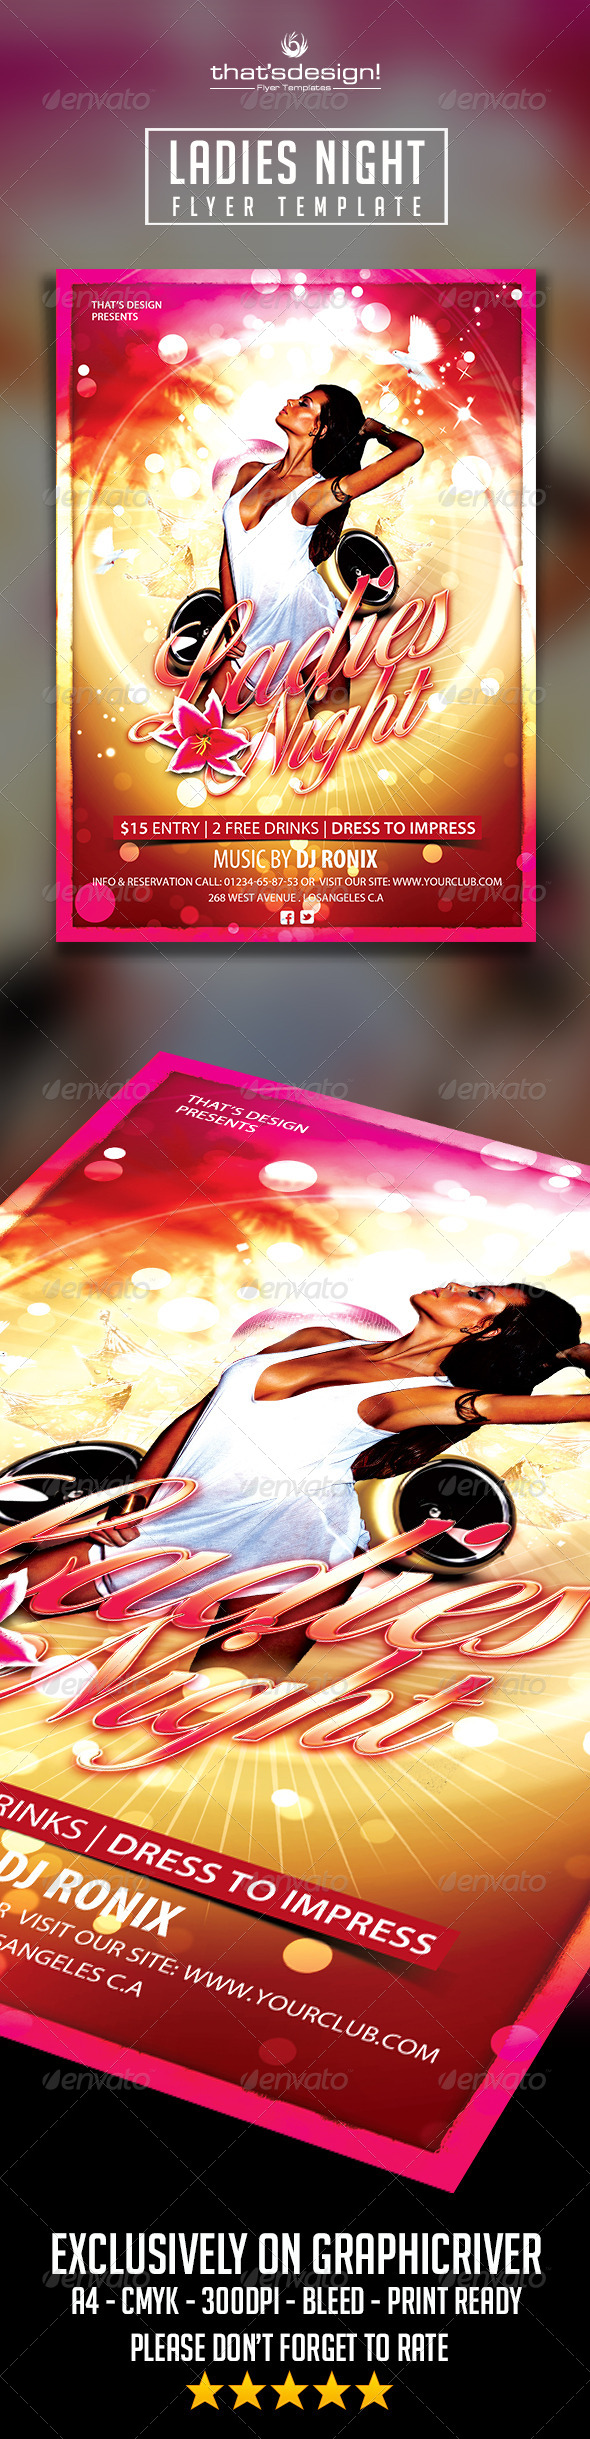 Sensual Ladies Night Flyer Template - Clubs & Parties Events